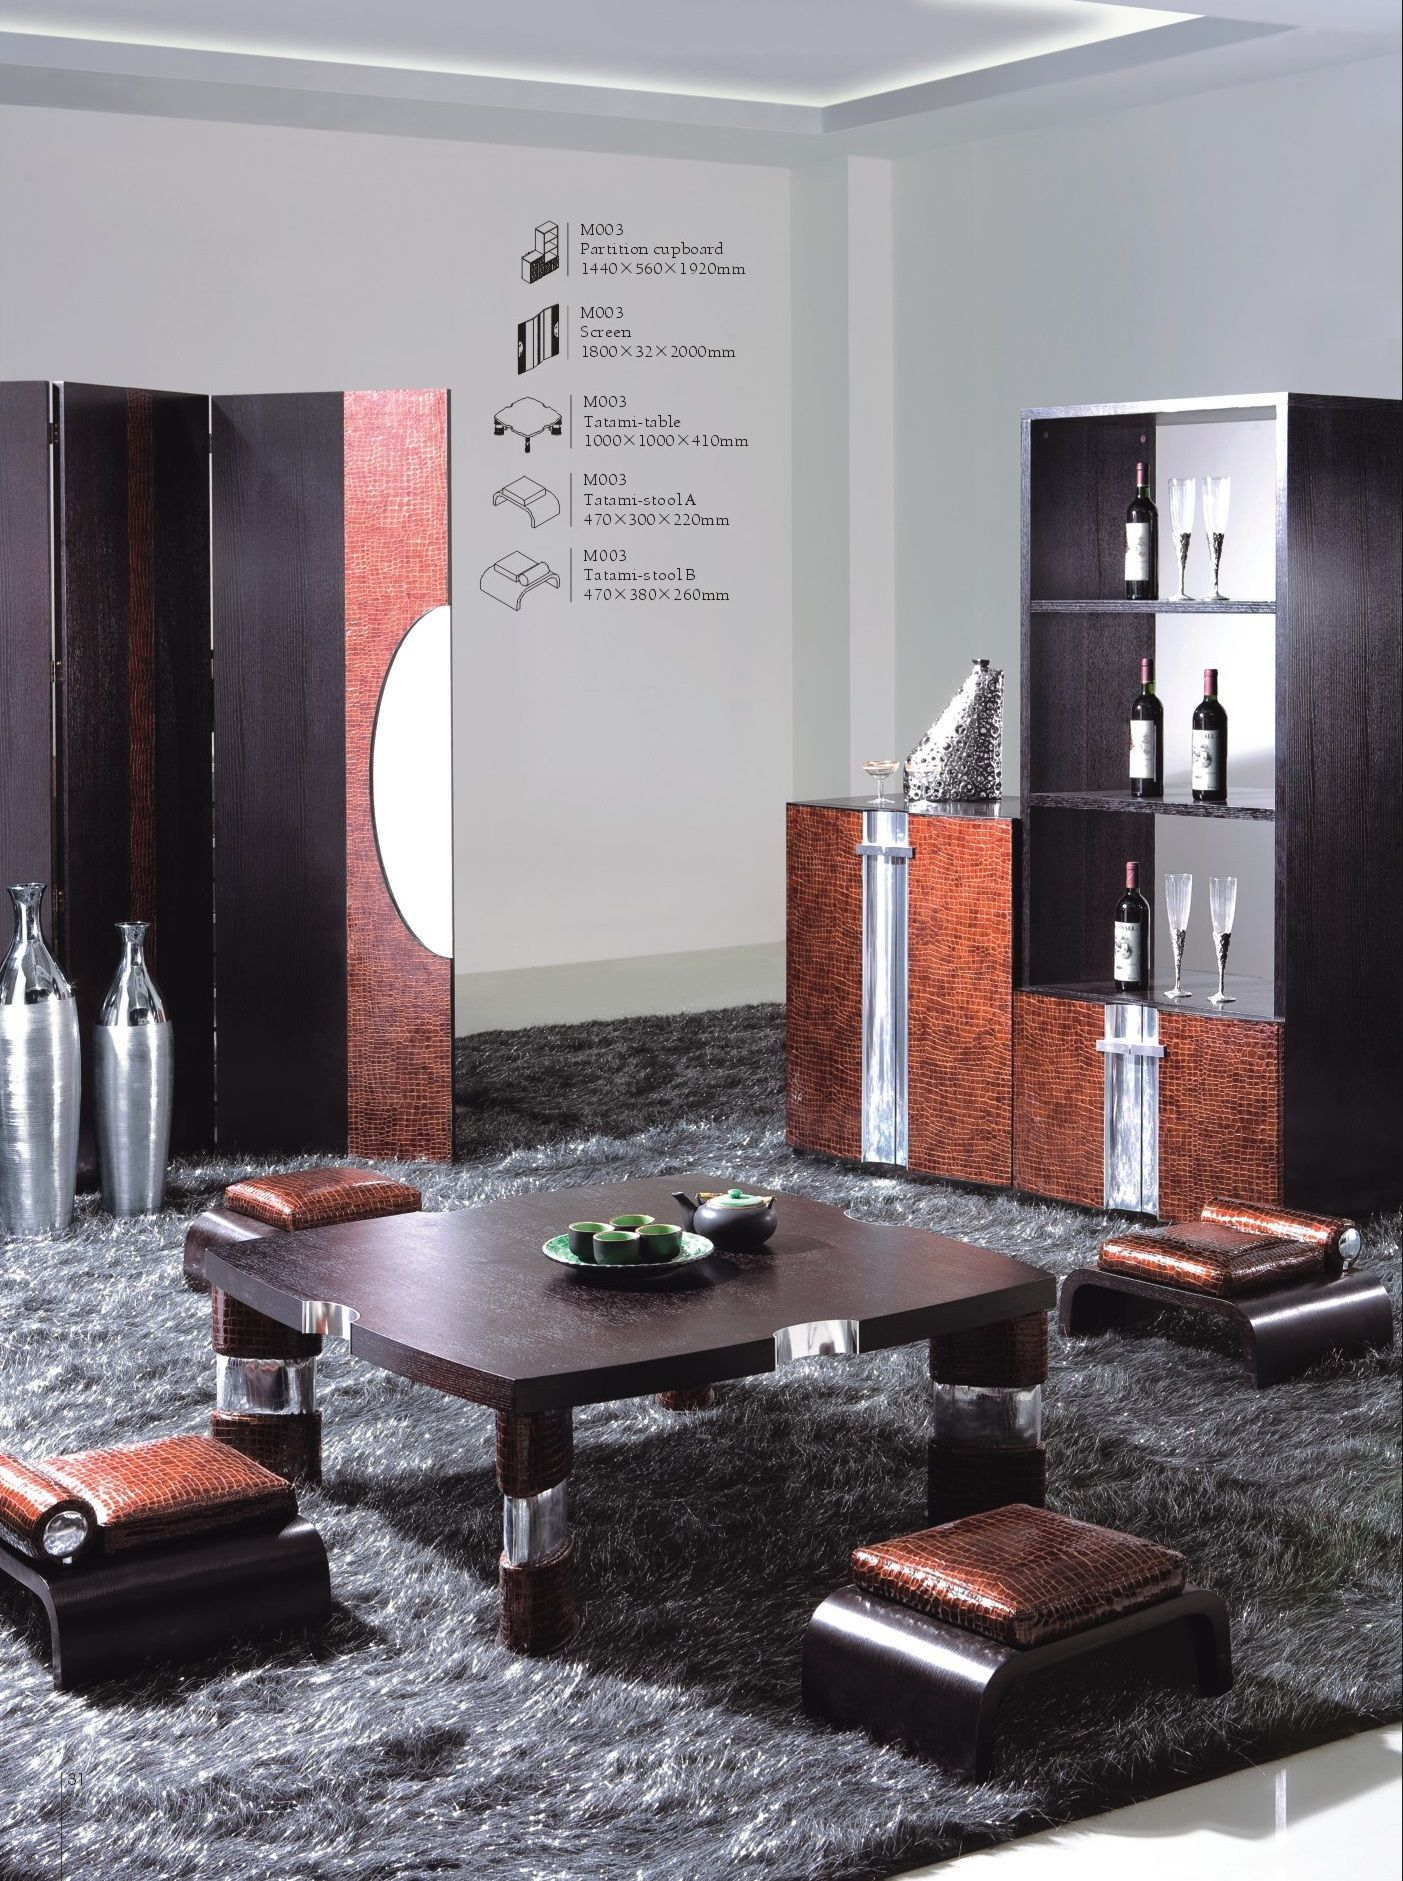 designer m bel designer serie tabelle tatami m003die m bel aus italien. Black Bedroom Furniture Sets. Home Design Ideas